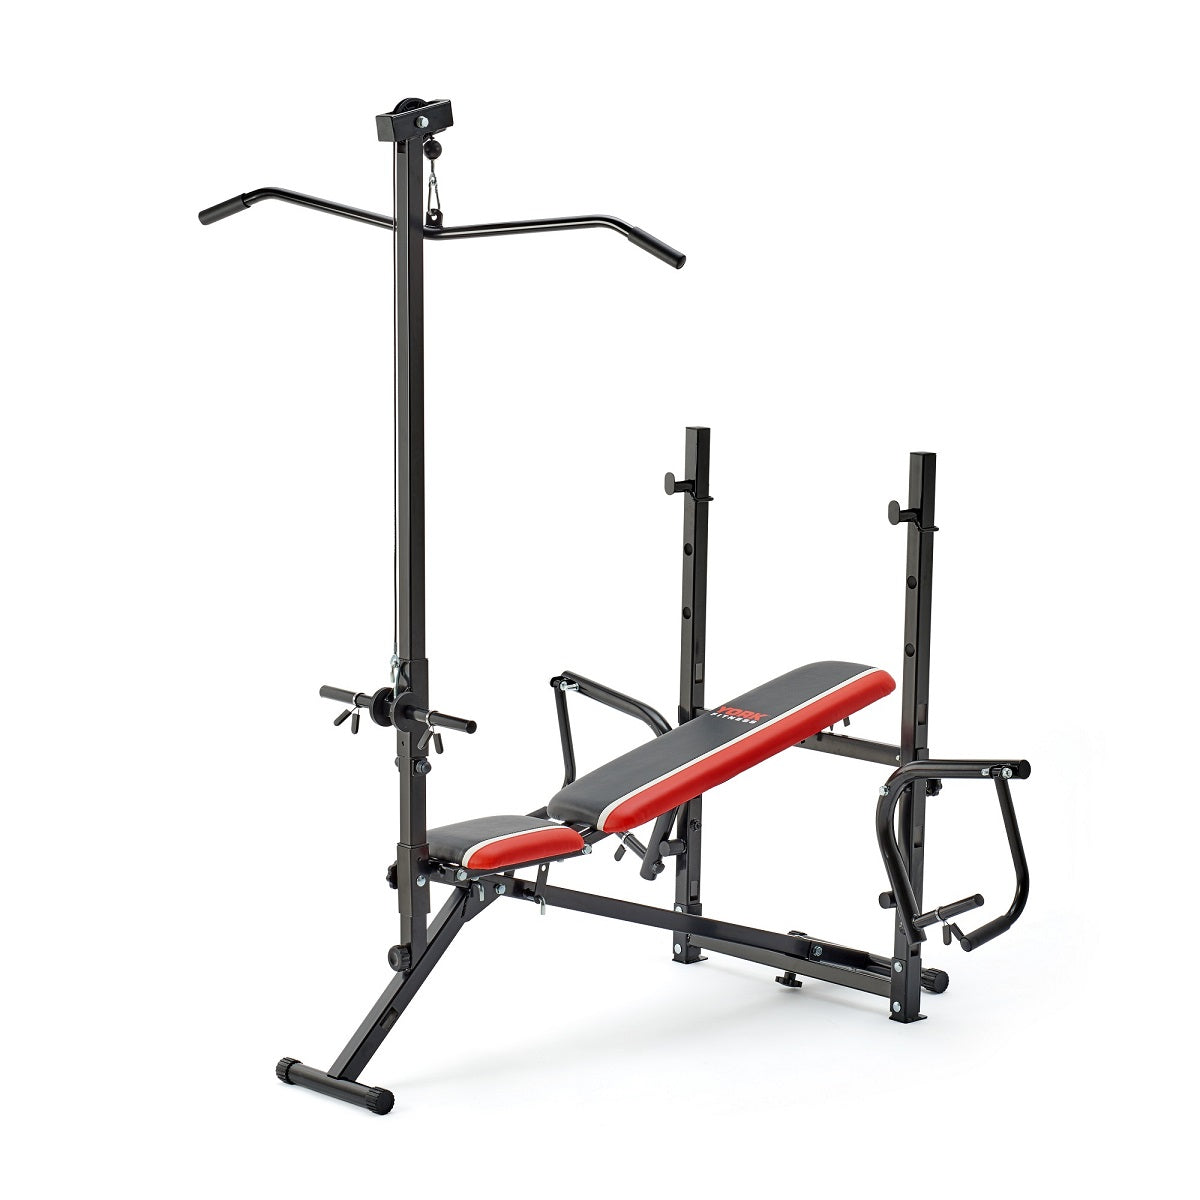 North York Personal Trainer For In Home: York Fitness Warrior Ultimate Multi-Function Bench